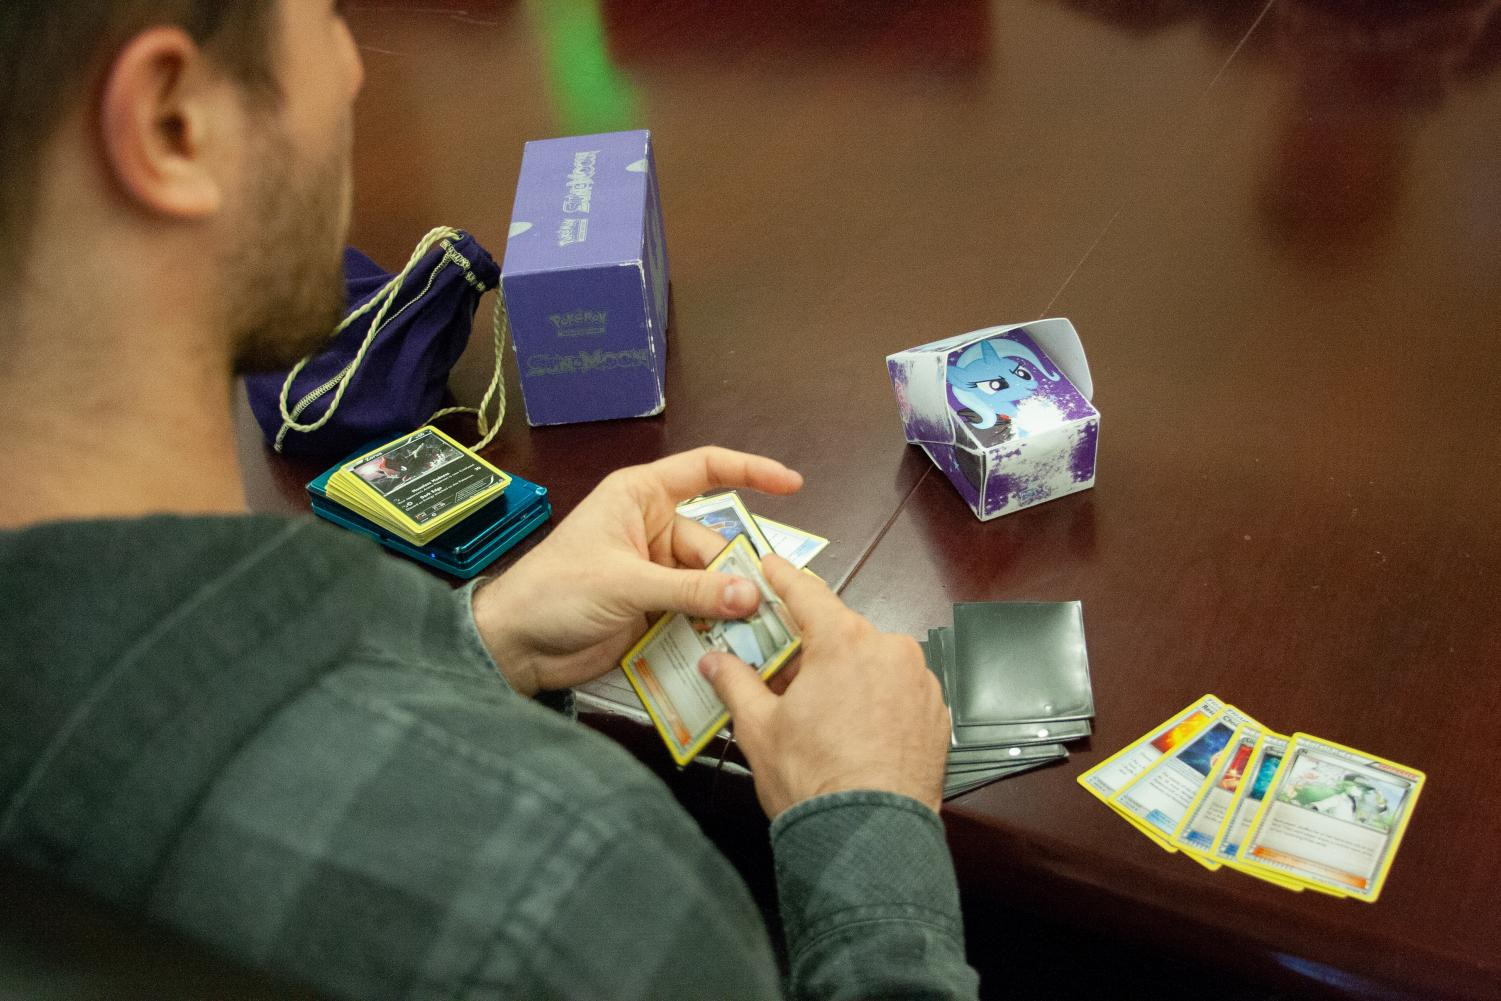 Pokemon Club Member Boewen Piotrowsk puts cards into protective sleeves before an in-house game.